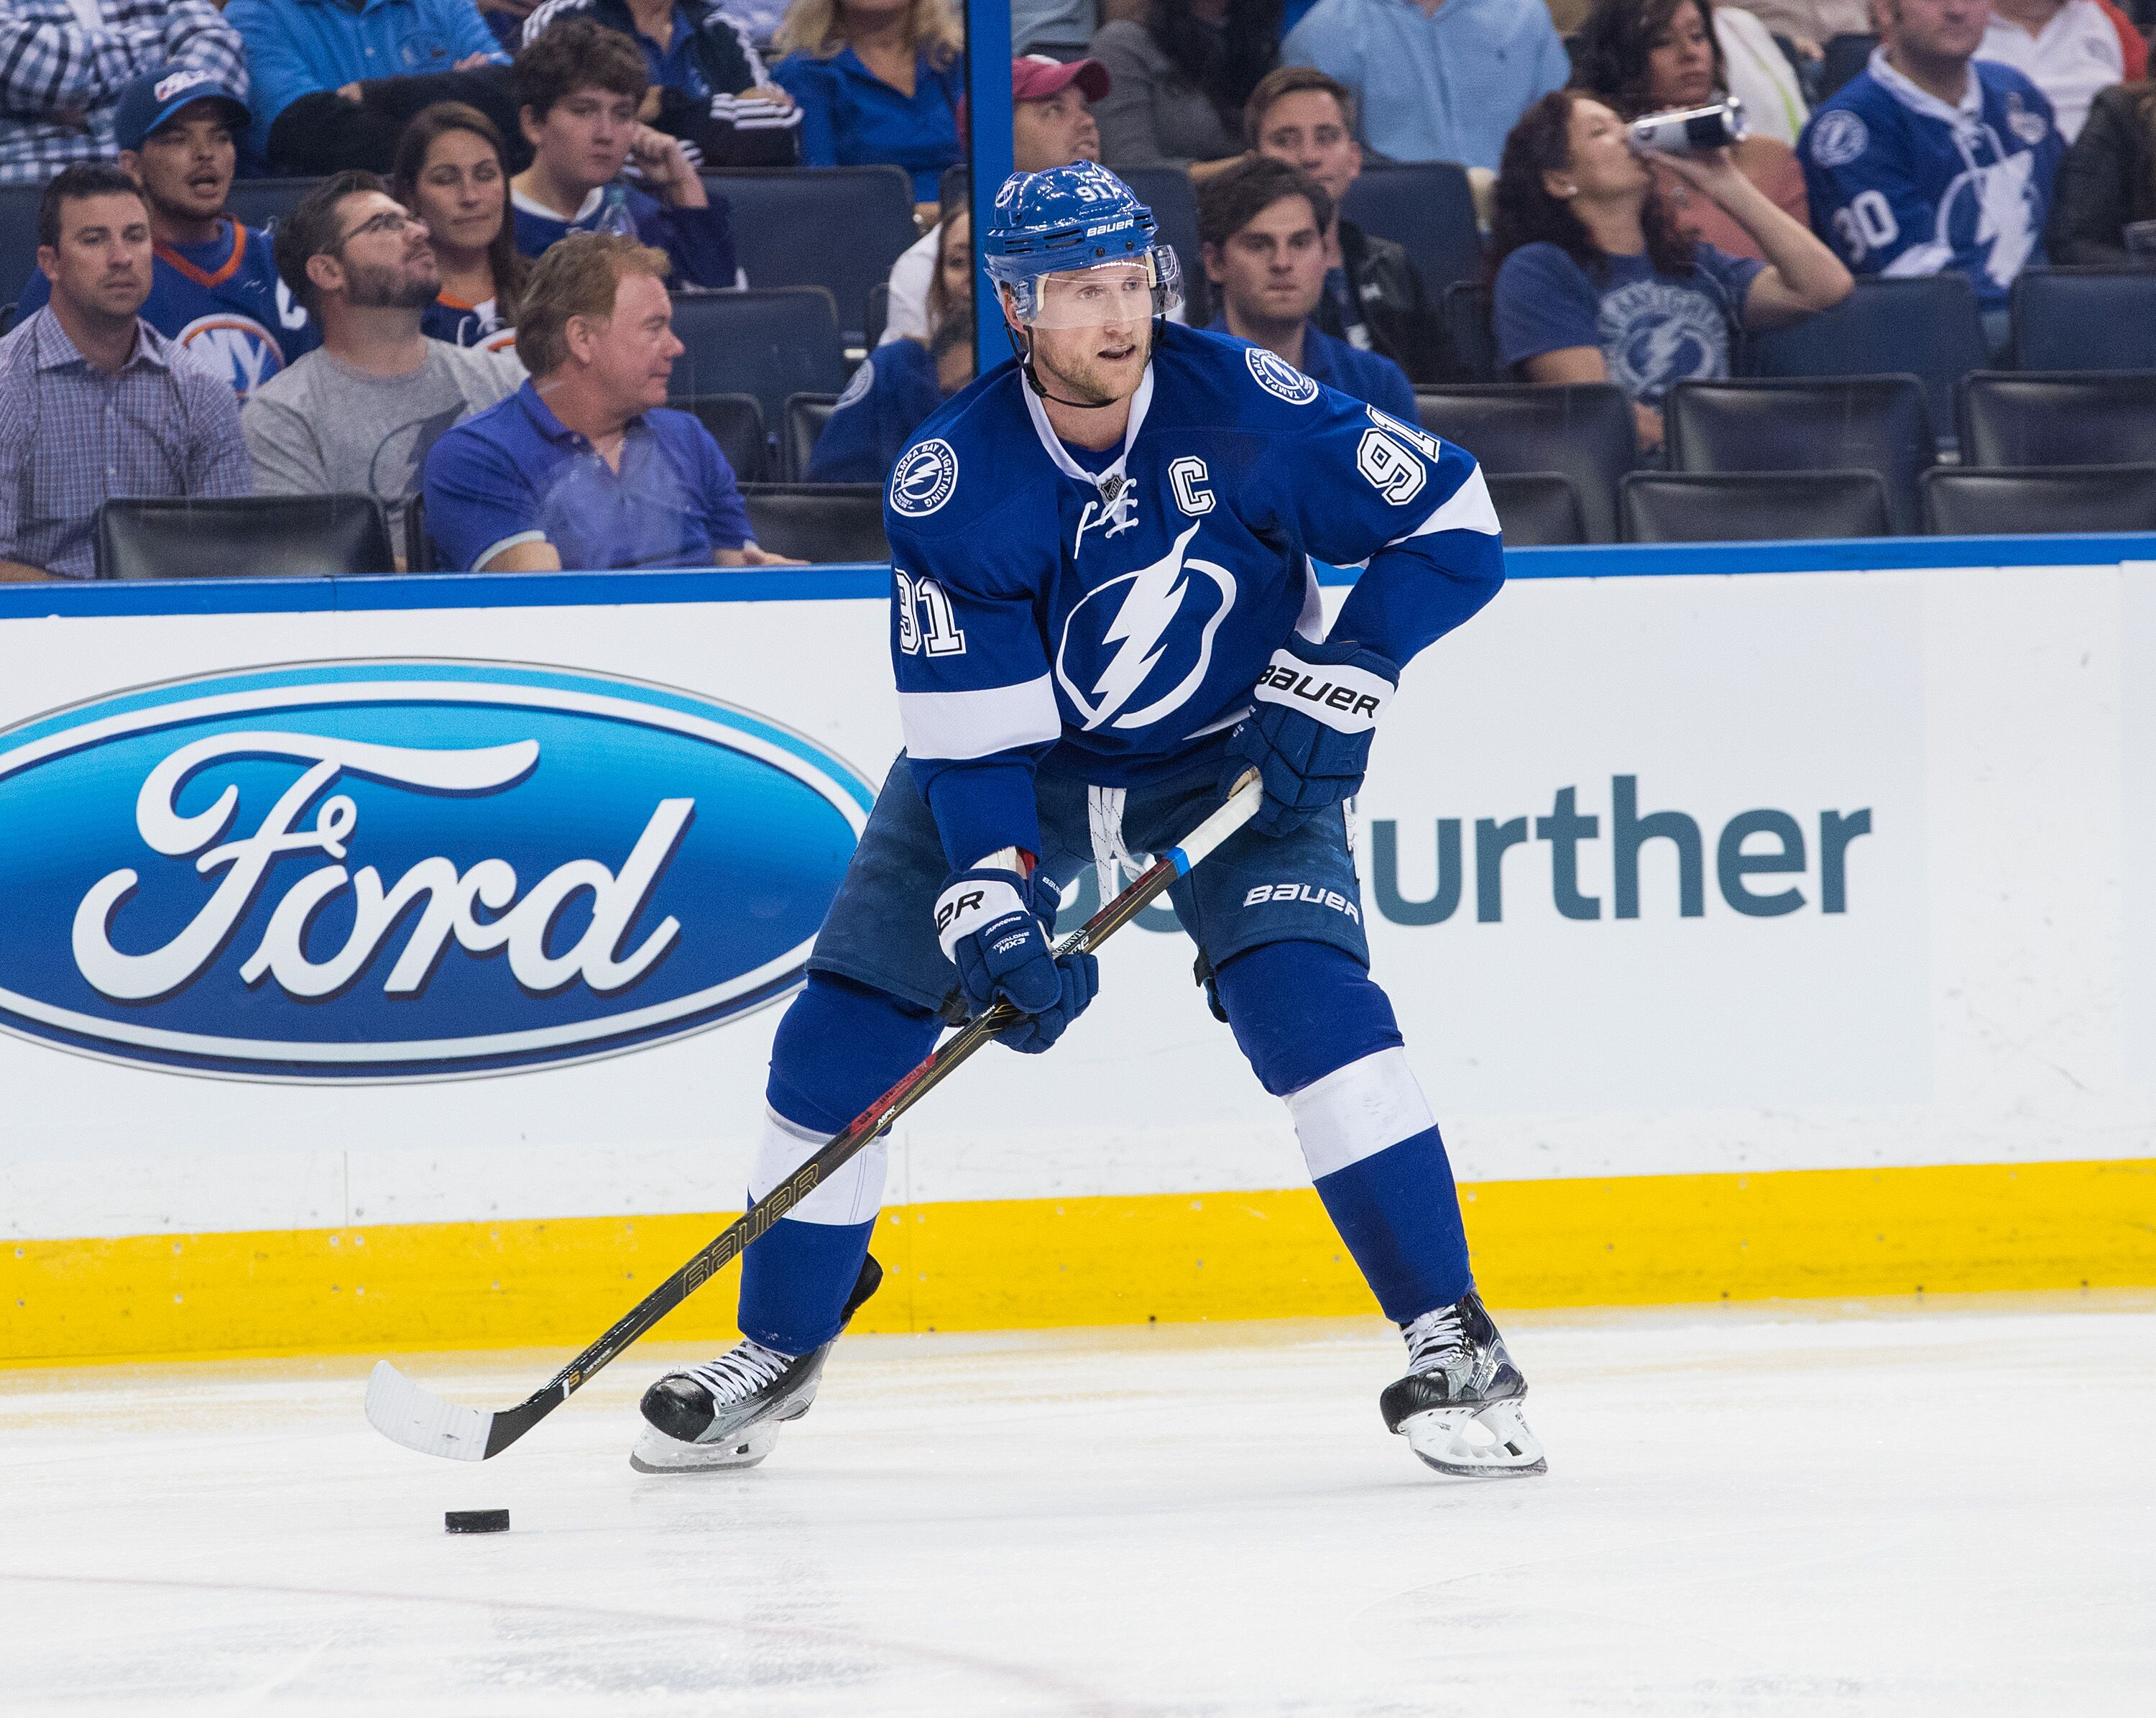 Steven Stamkos injury update: Recovery going well